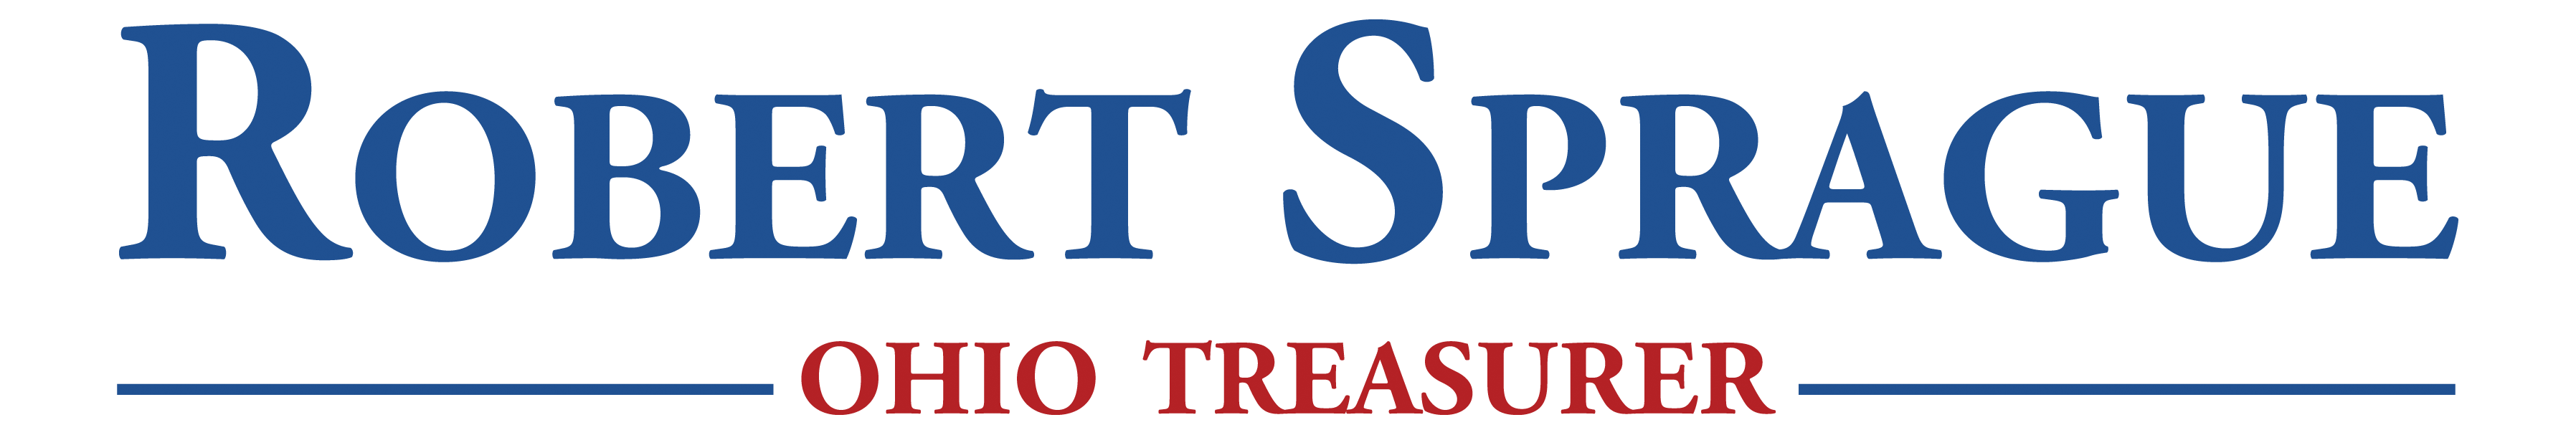 State Infrastructure Bank Programs - Official Seal or Logo